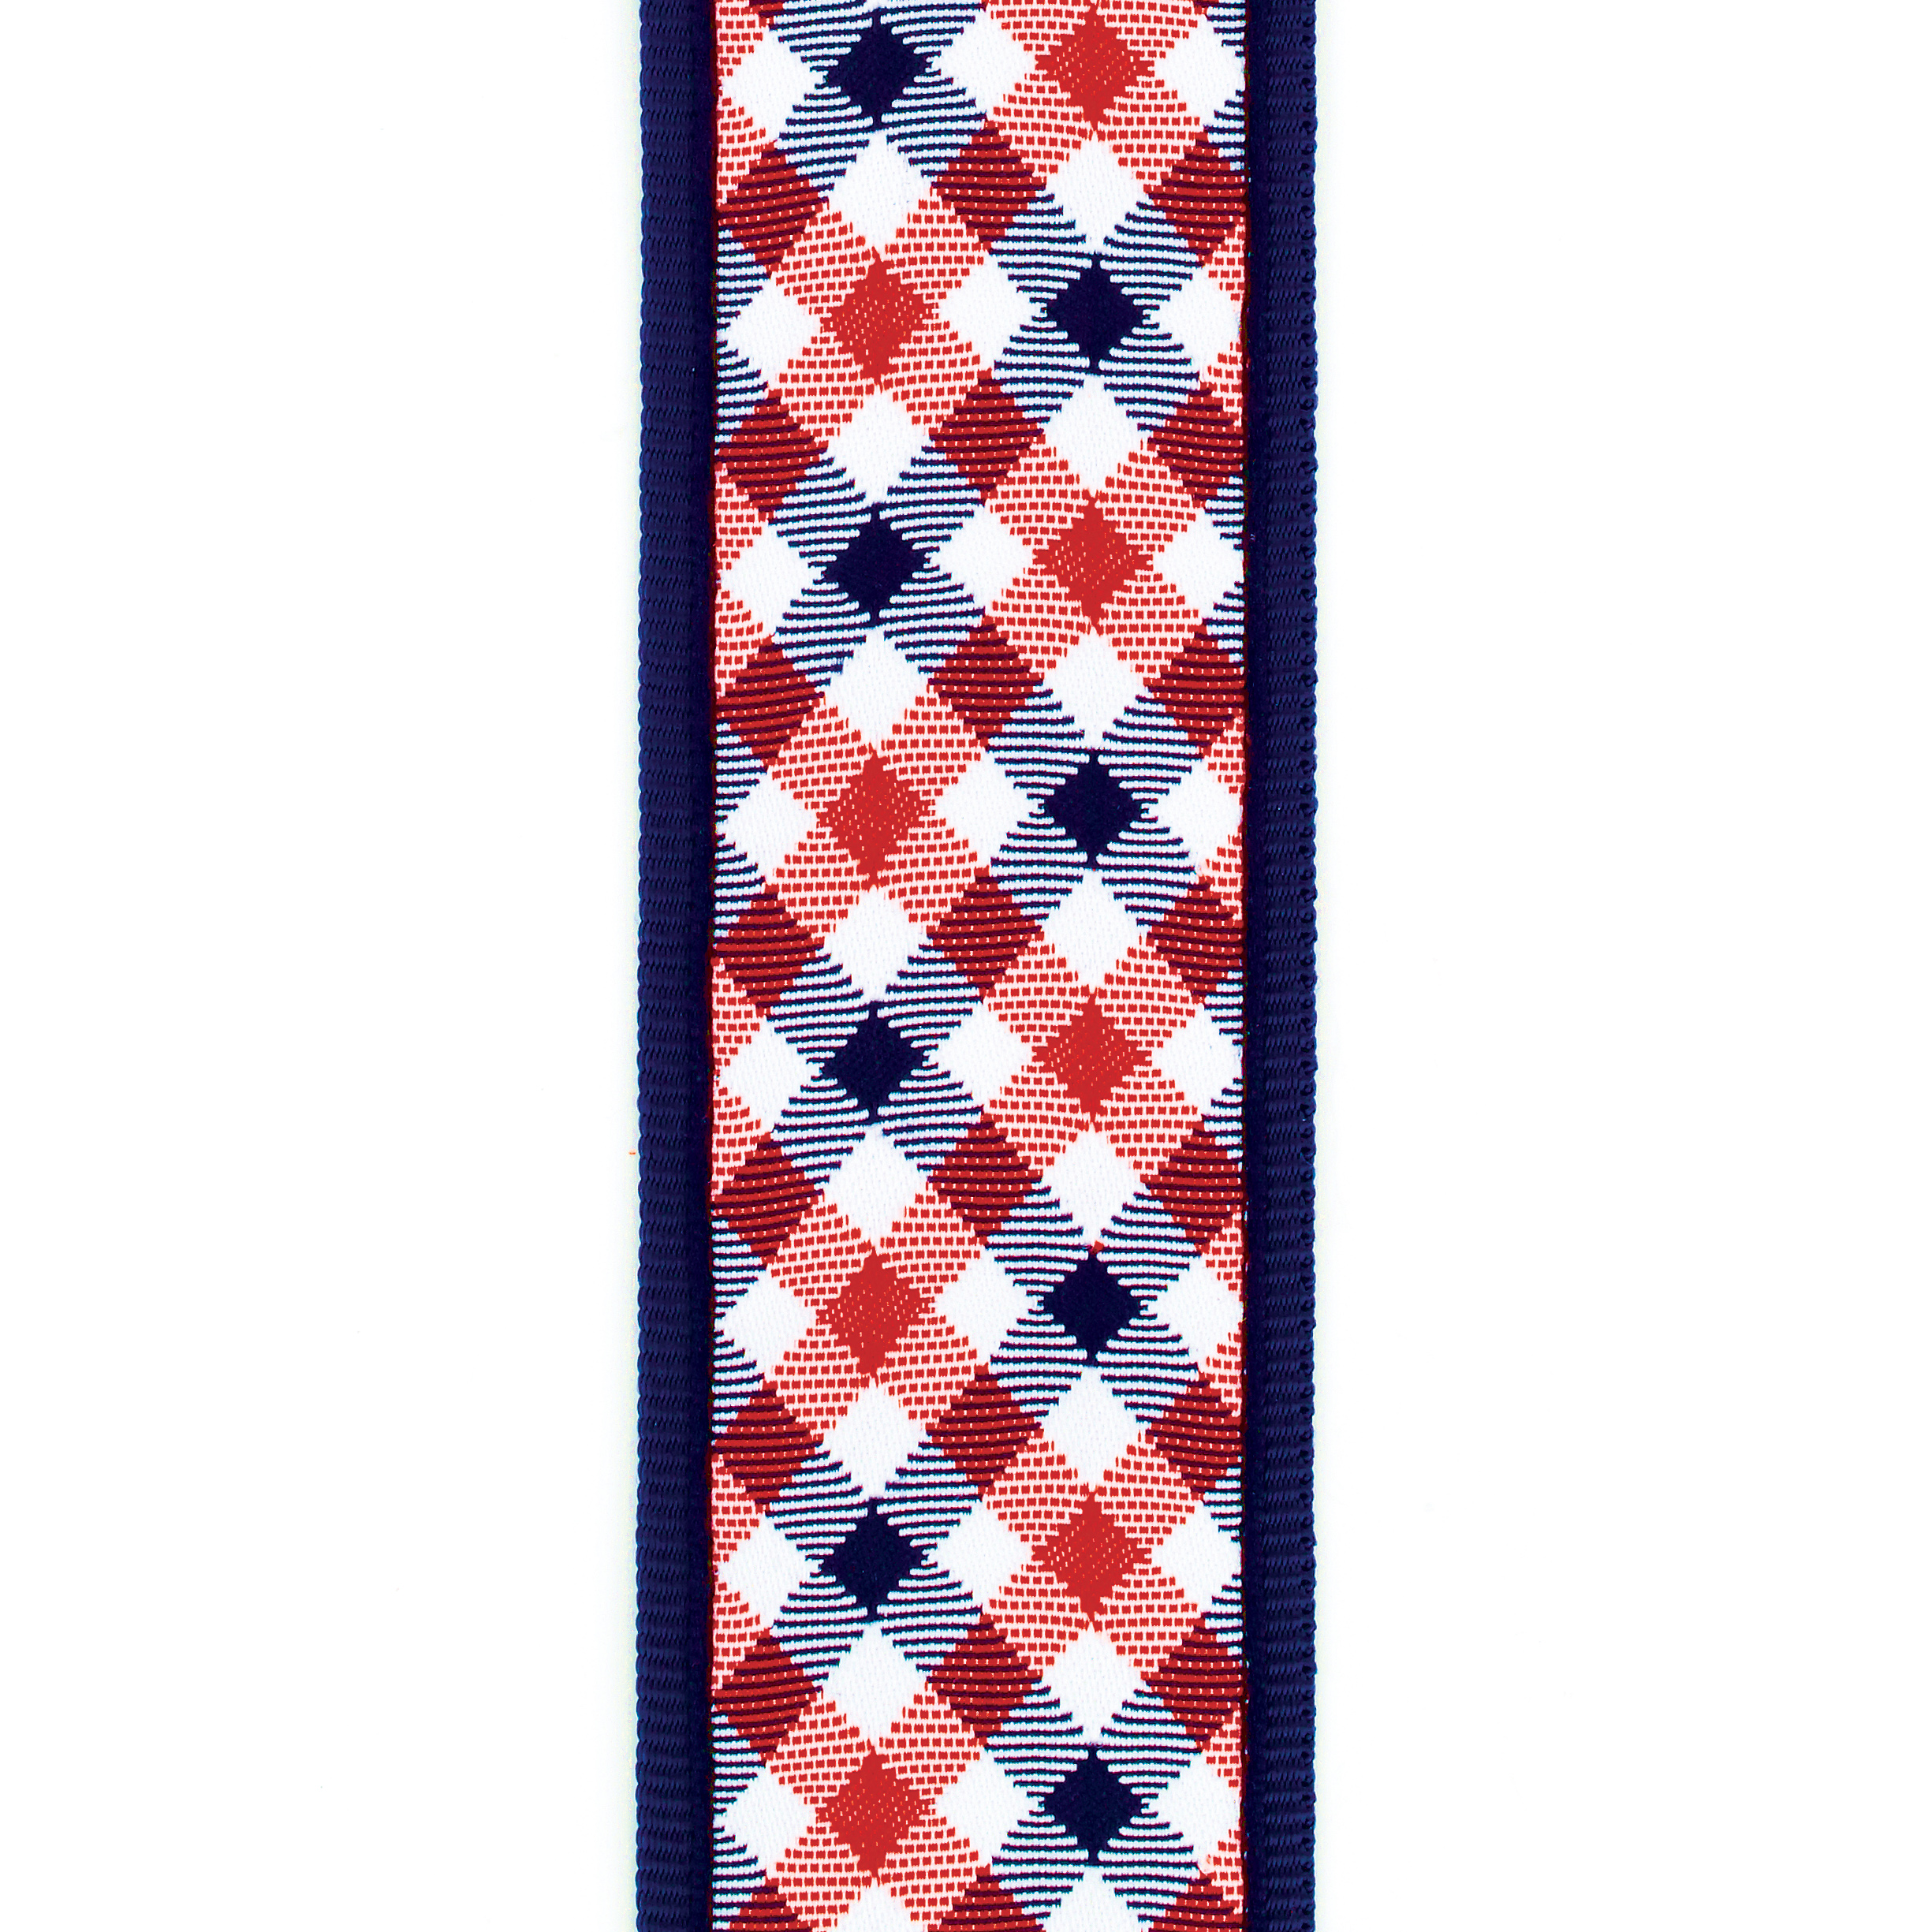 D'Addario Gingham Woven Guitar Strap, Red and Navy